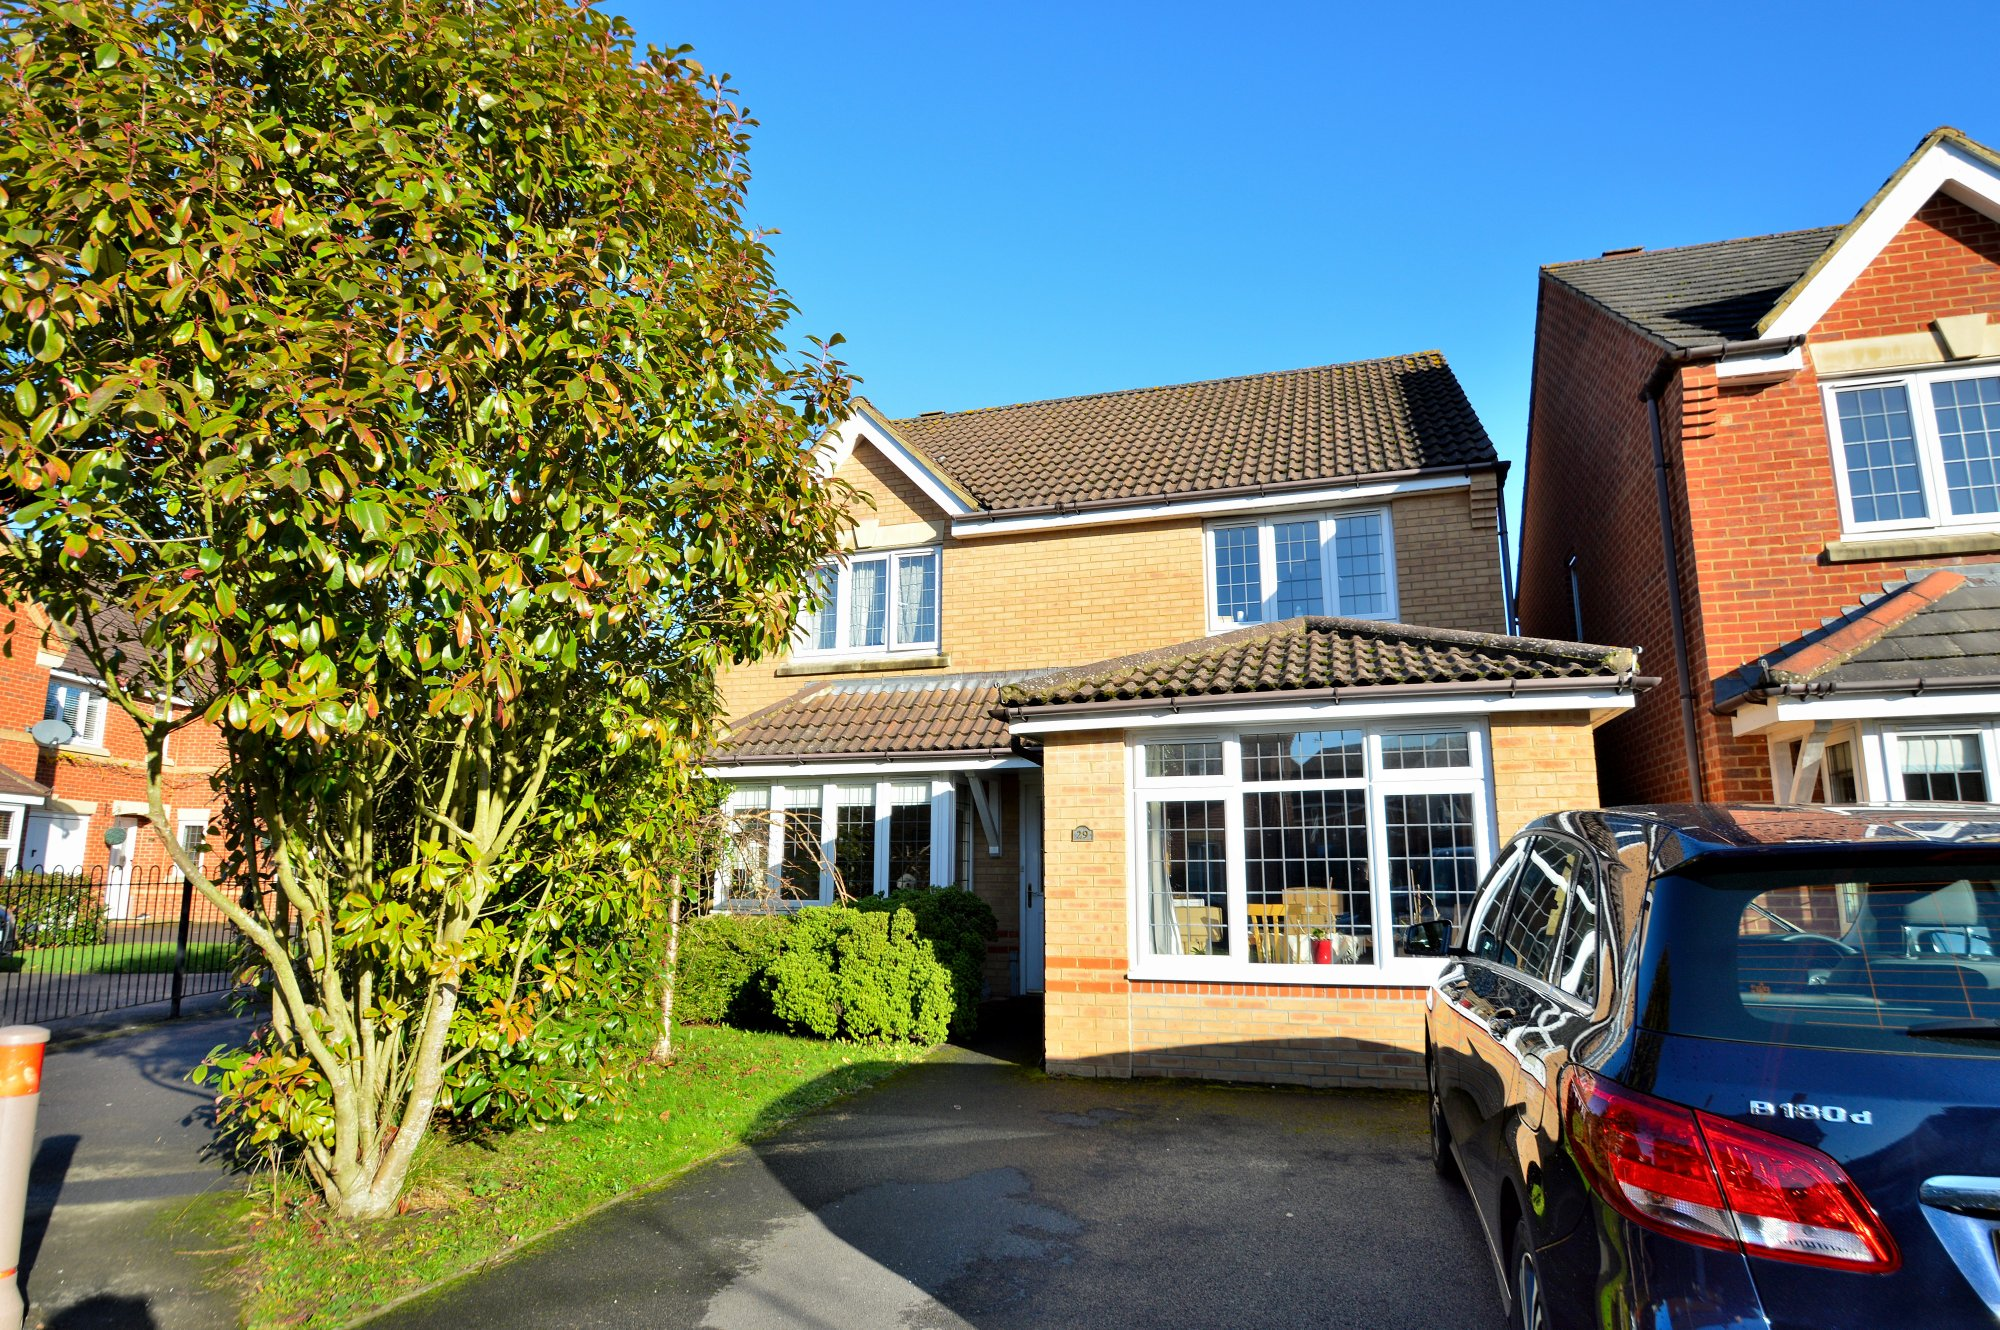 Gardner Way, Chandlers Ford, Eastleigh